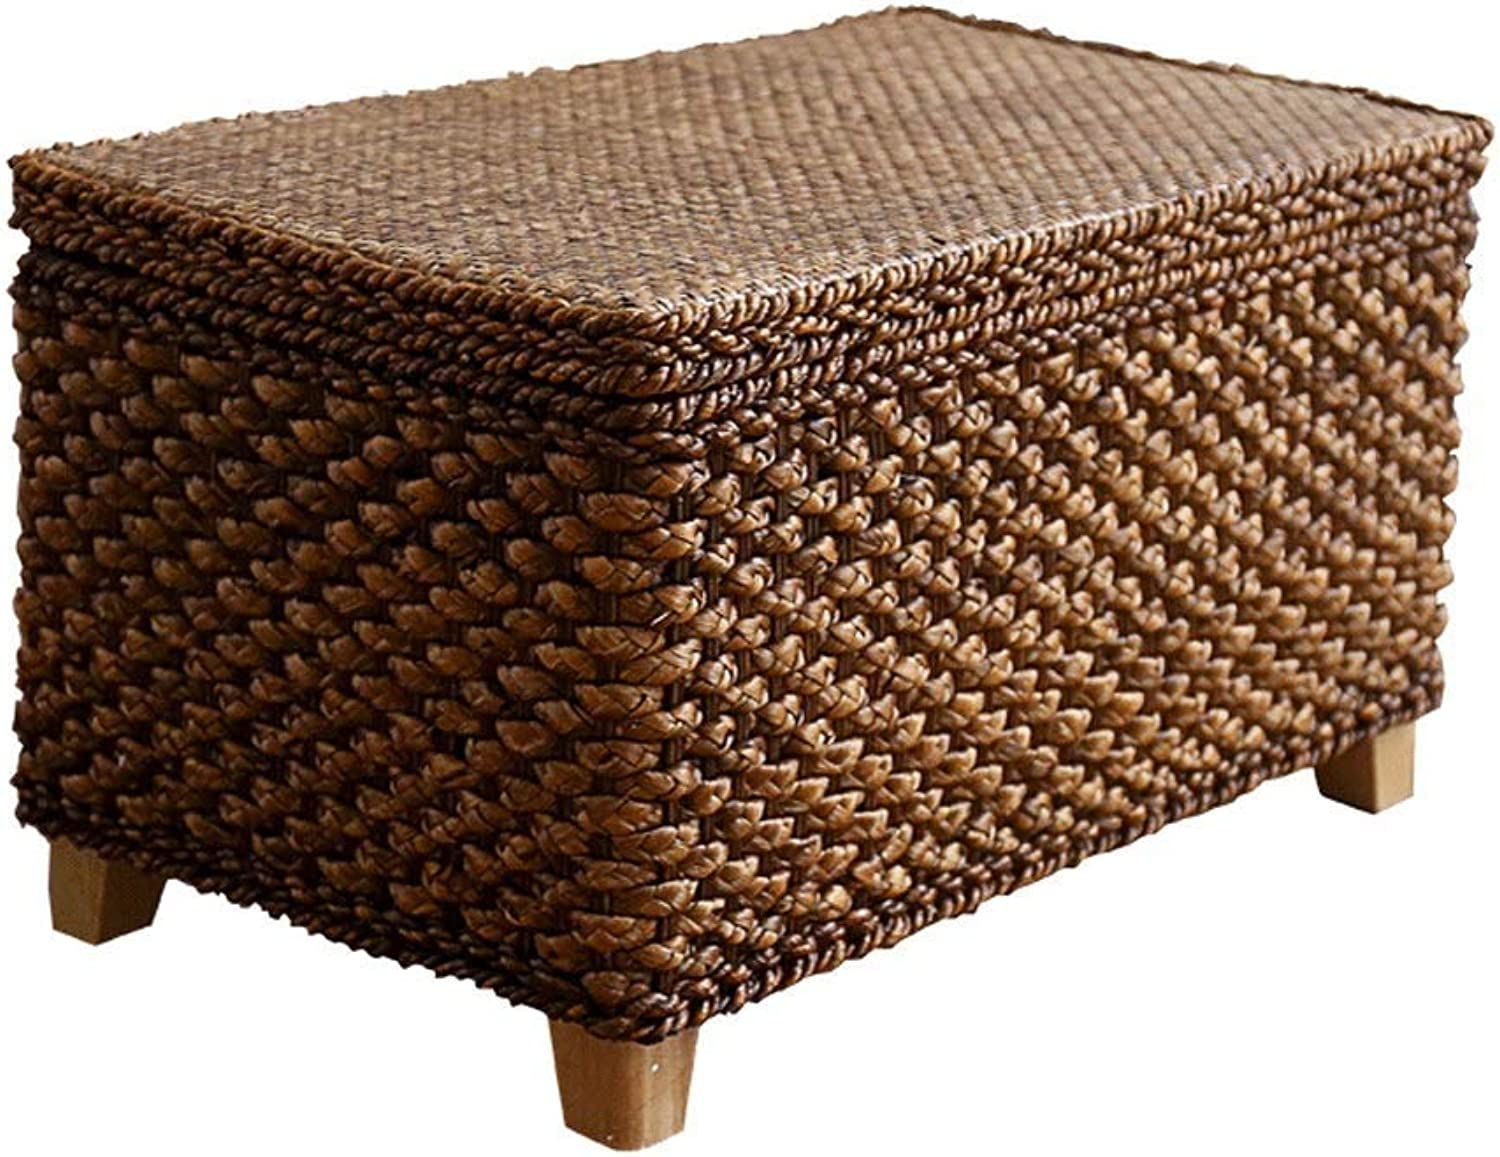 Footstool Rattan Weaving Storage Stool Change shoes Bench Footrest Can Sit 50X30X40CM Sofa Stool Haiming (Size   50X30X30CM)